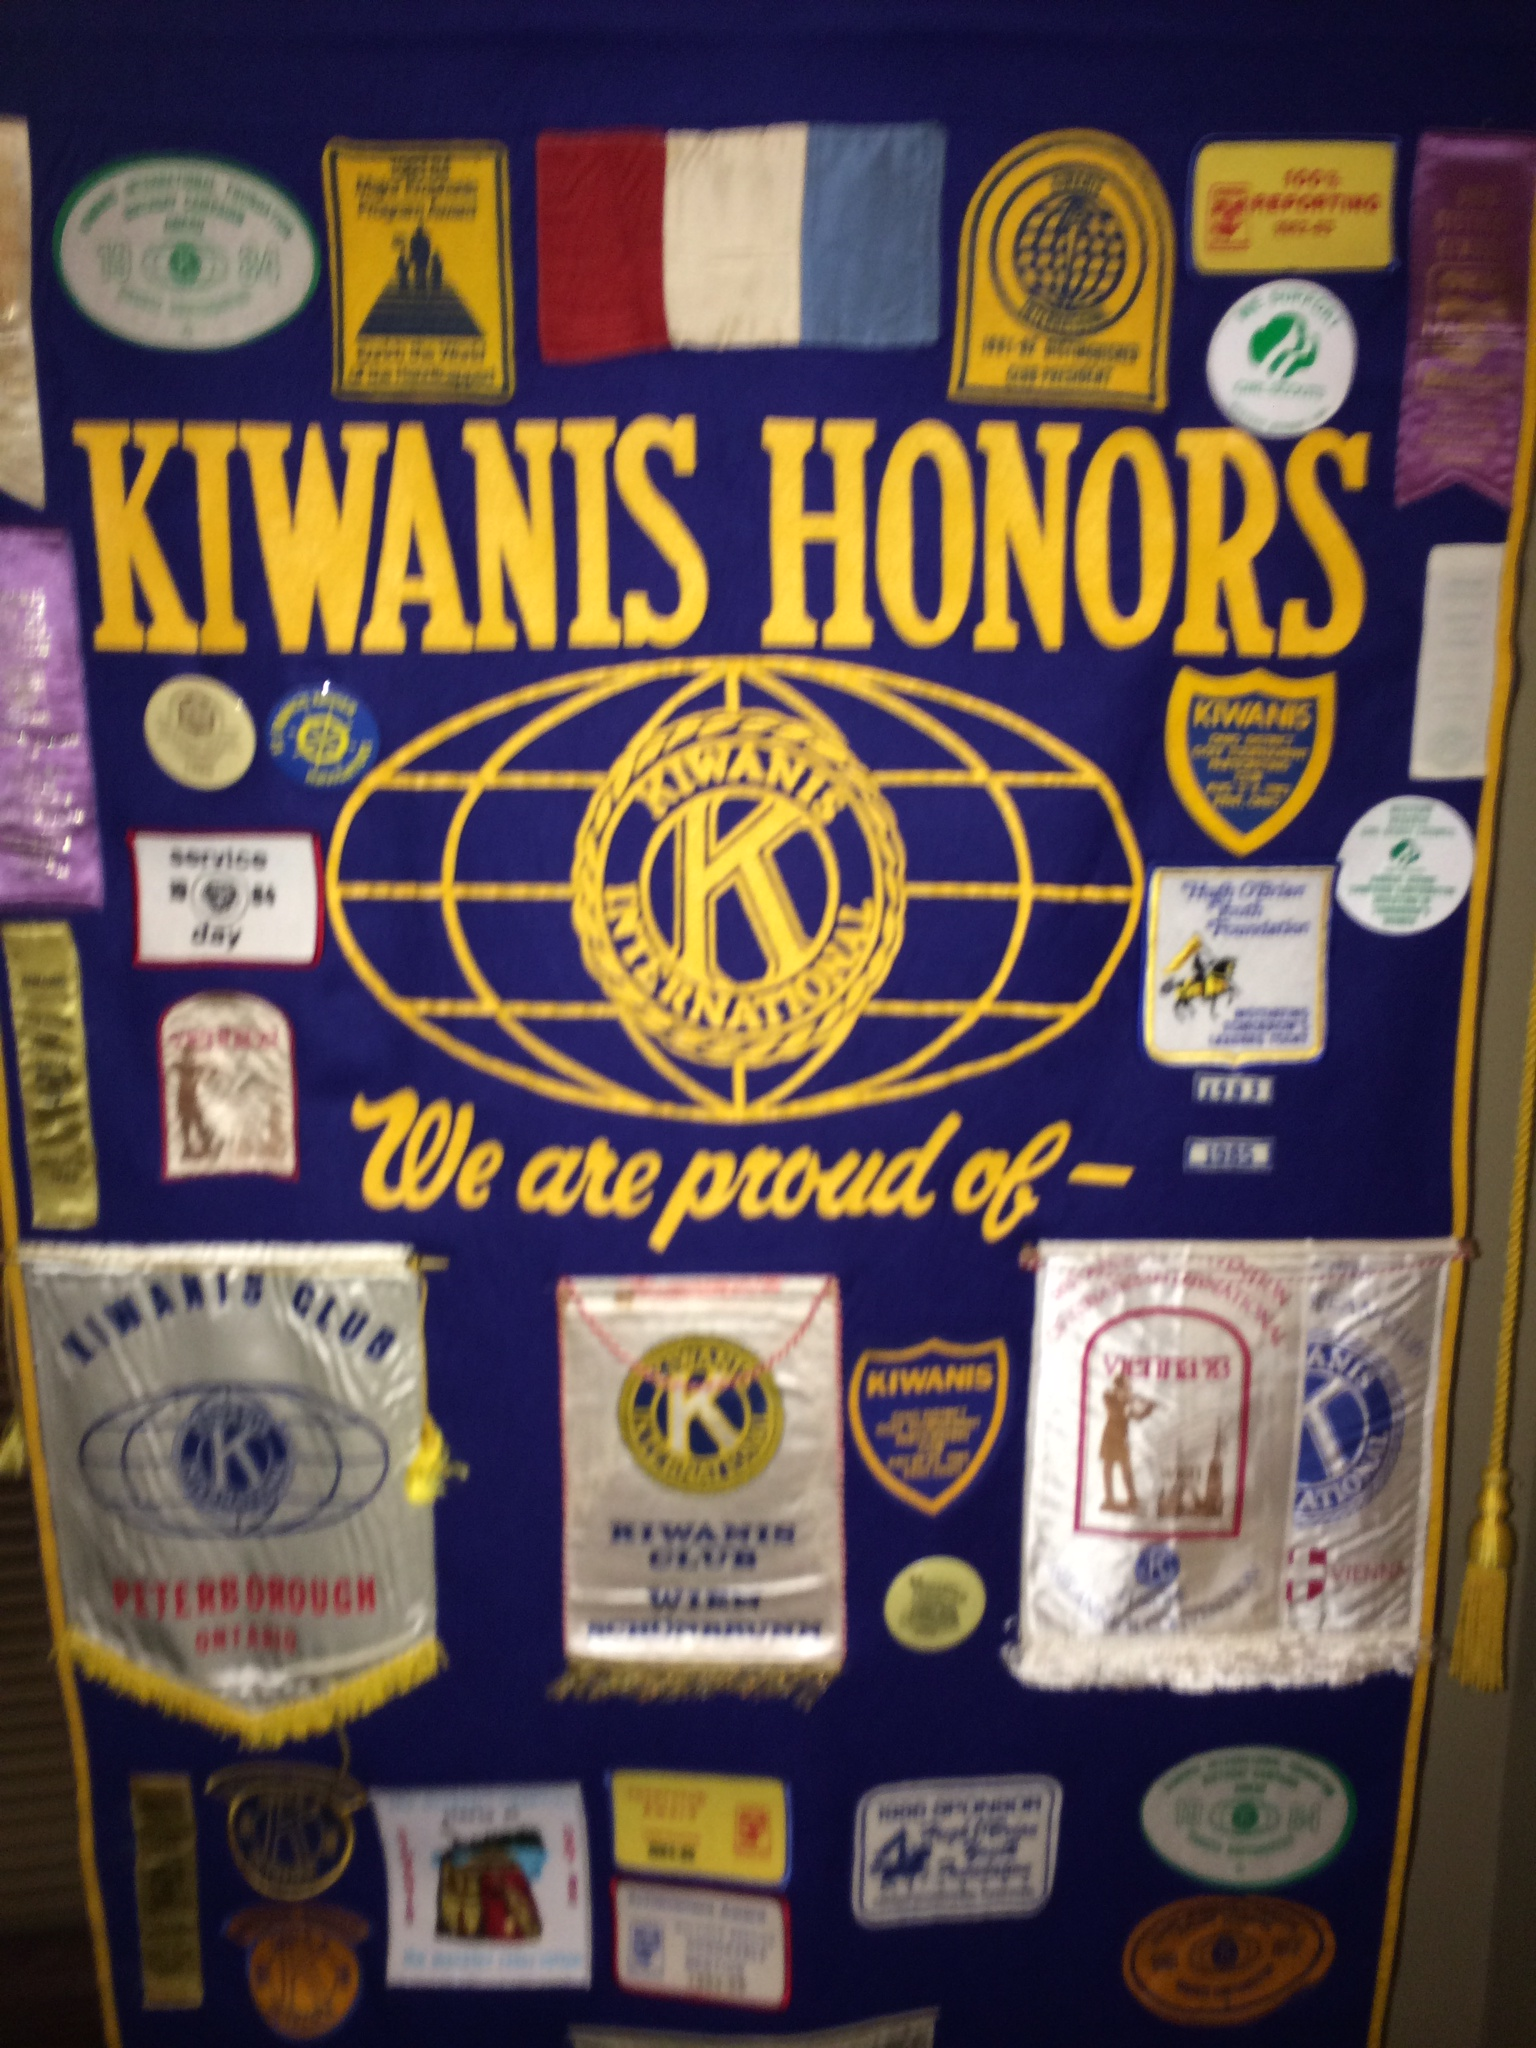 Kiwanis-Honors